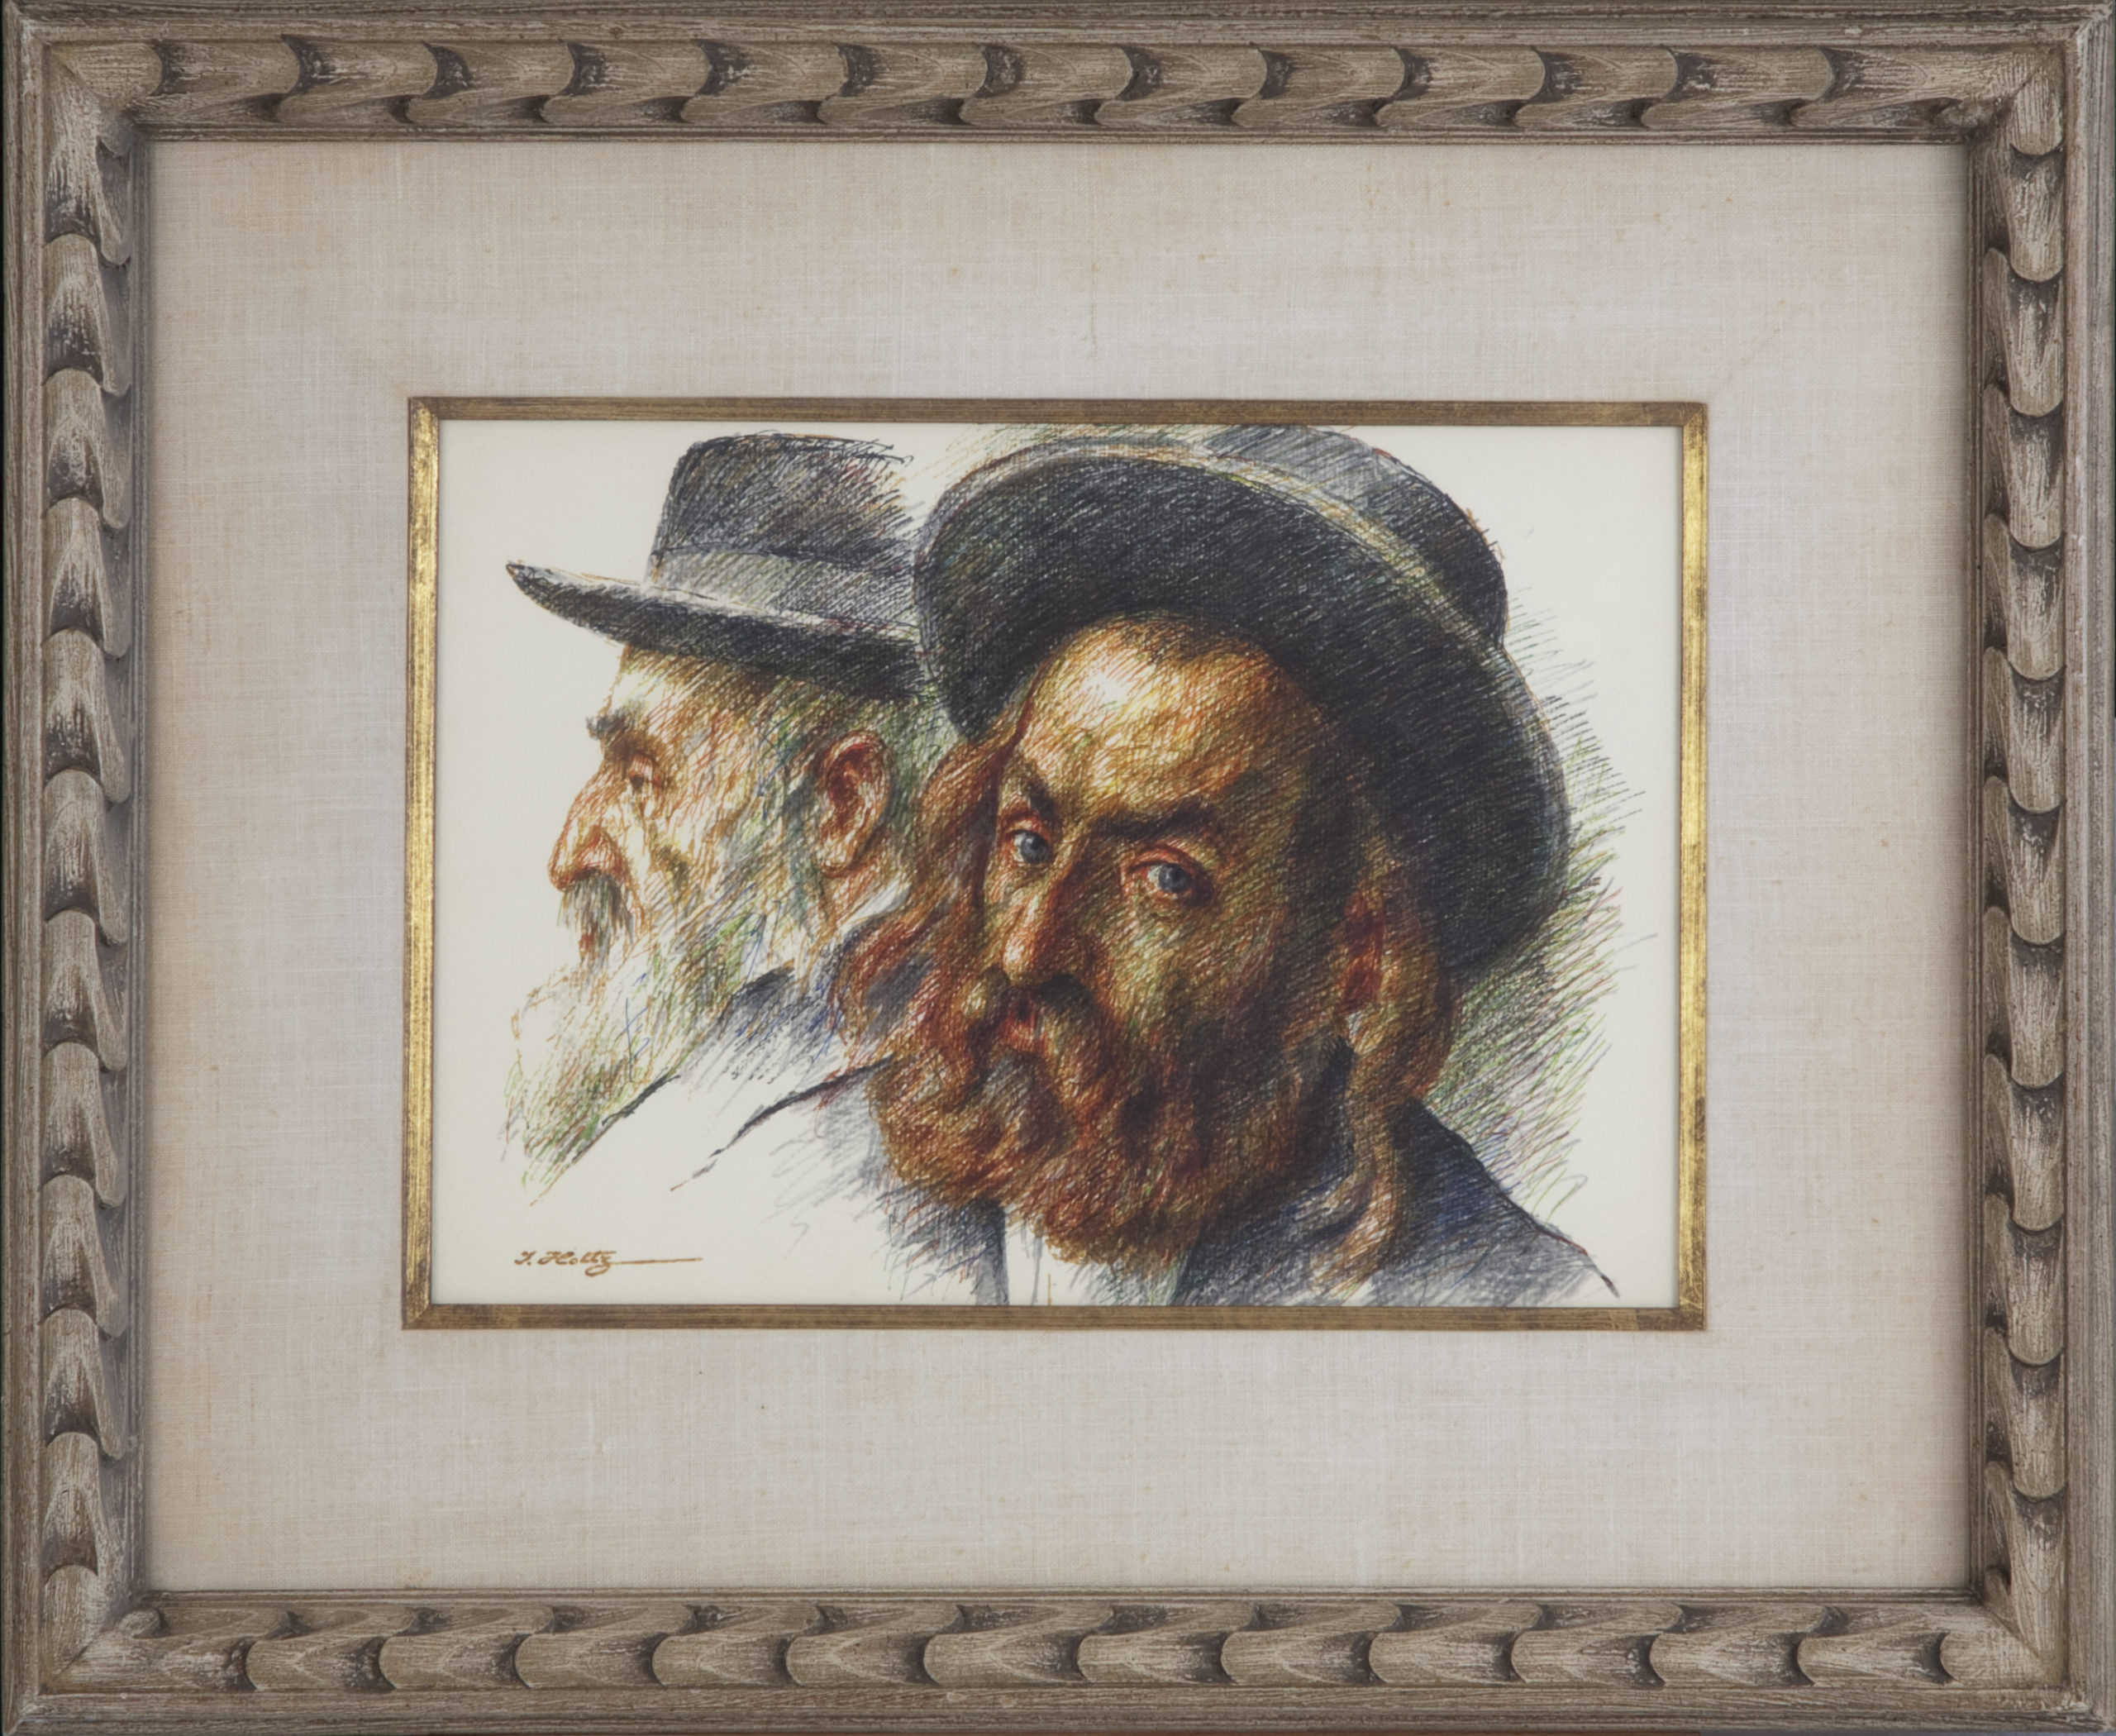 151 Chassidim 1968 - Colored ink - 14 x 10 - Frame: 23 x 19 x 1.75